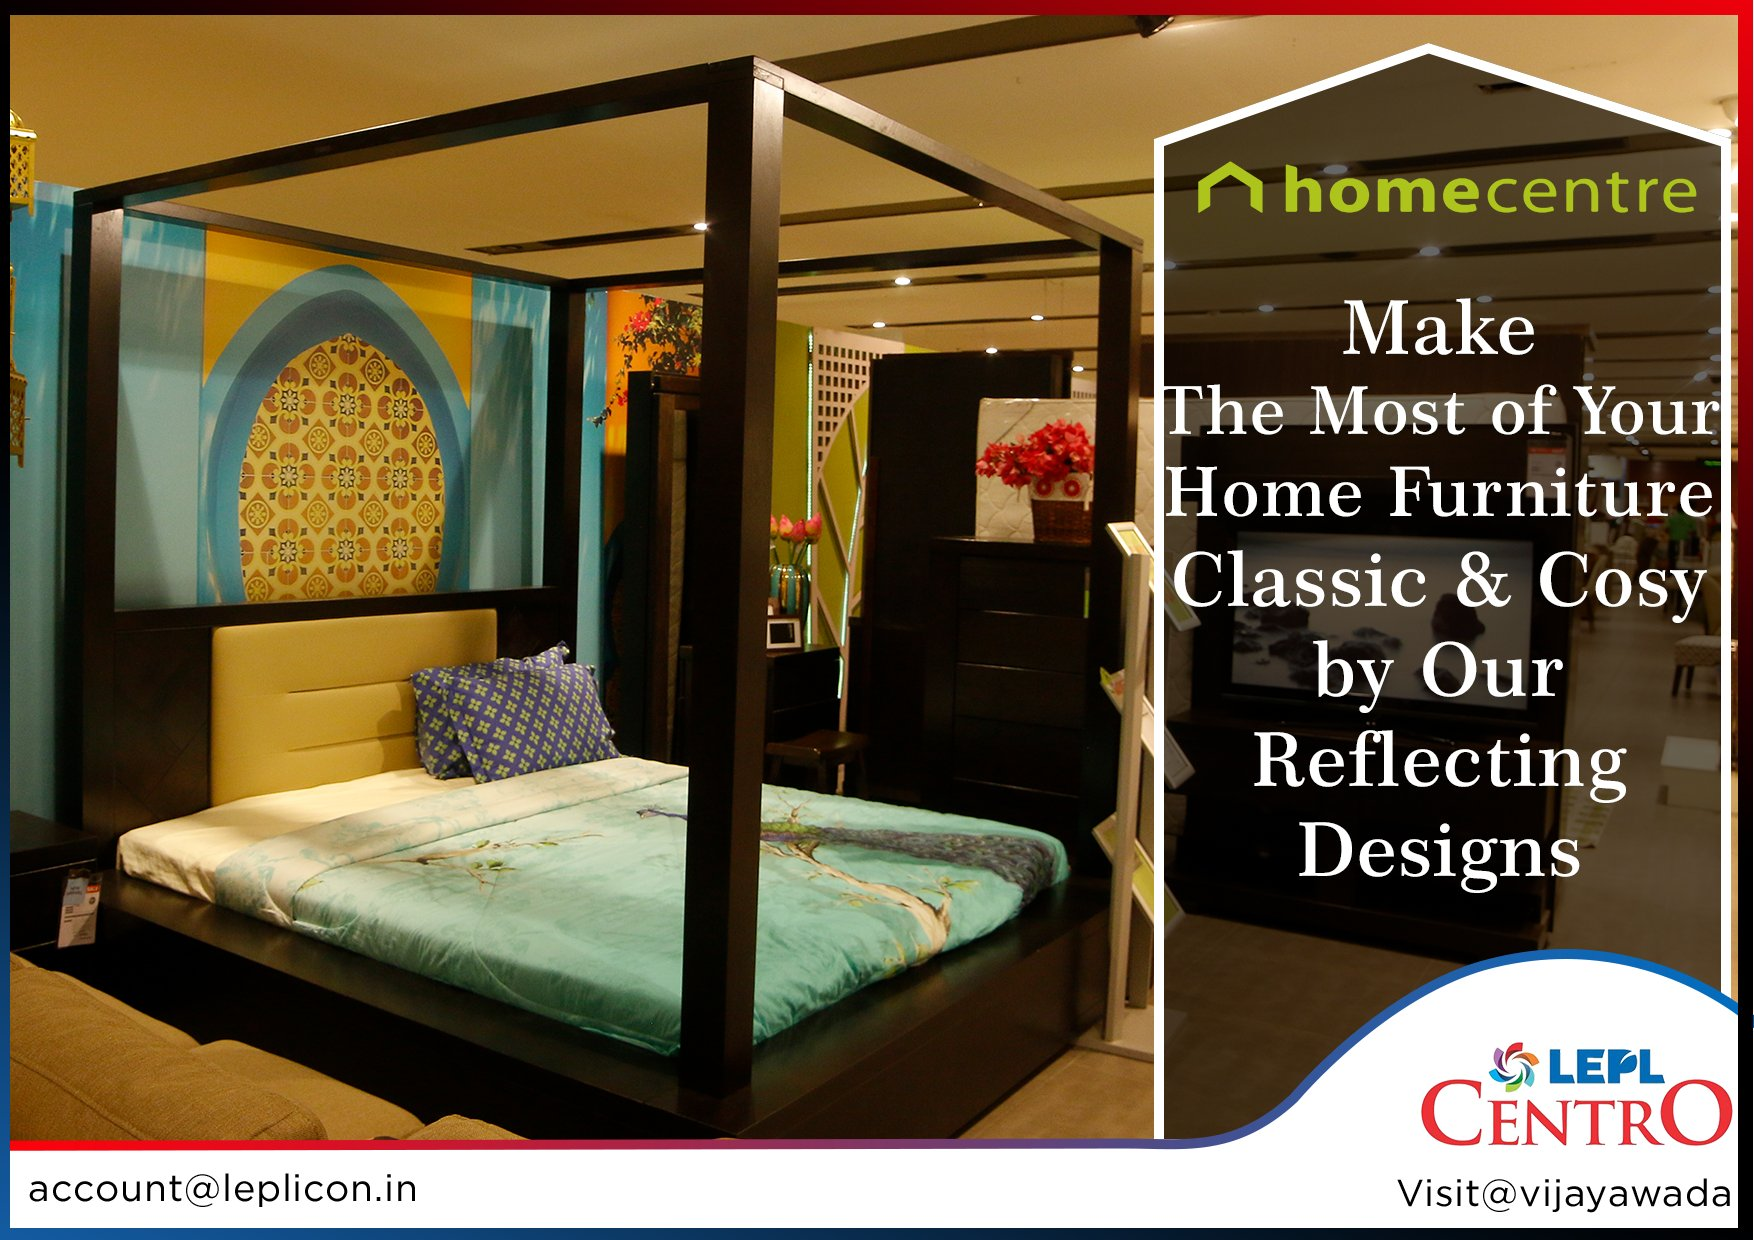 Lepl Centro On Twitter Make The Most Of Your Homefurniture Classic Cosy By Our Reflecting Designs Home Centre In Leplcentro Vijayawada India Homedecor Interiordesign Bedroom Furniture Https T Co 339tm1rxhj